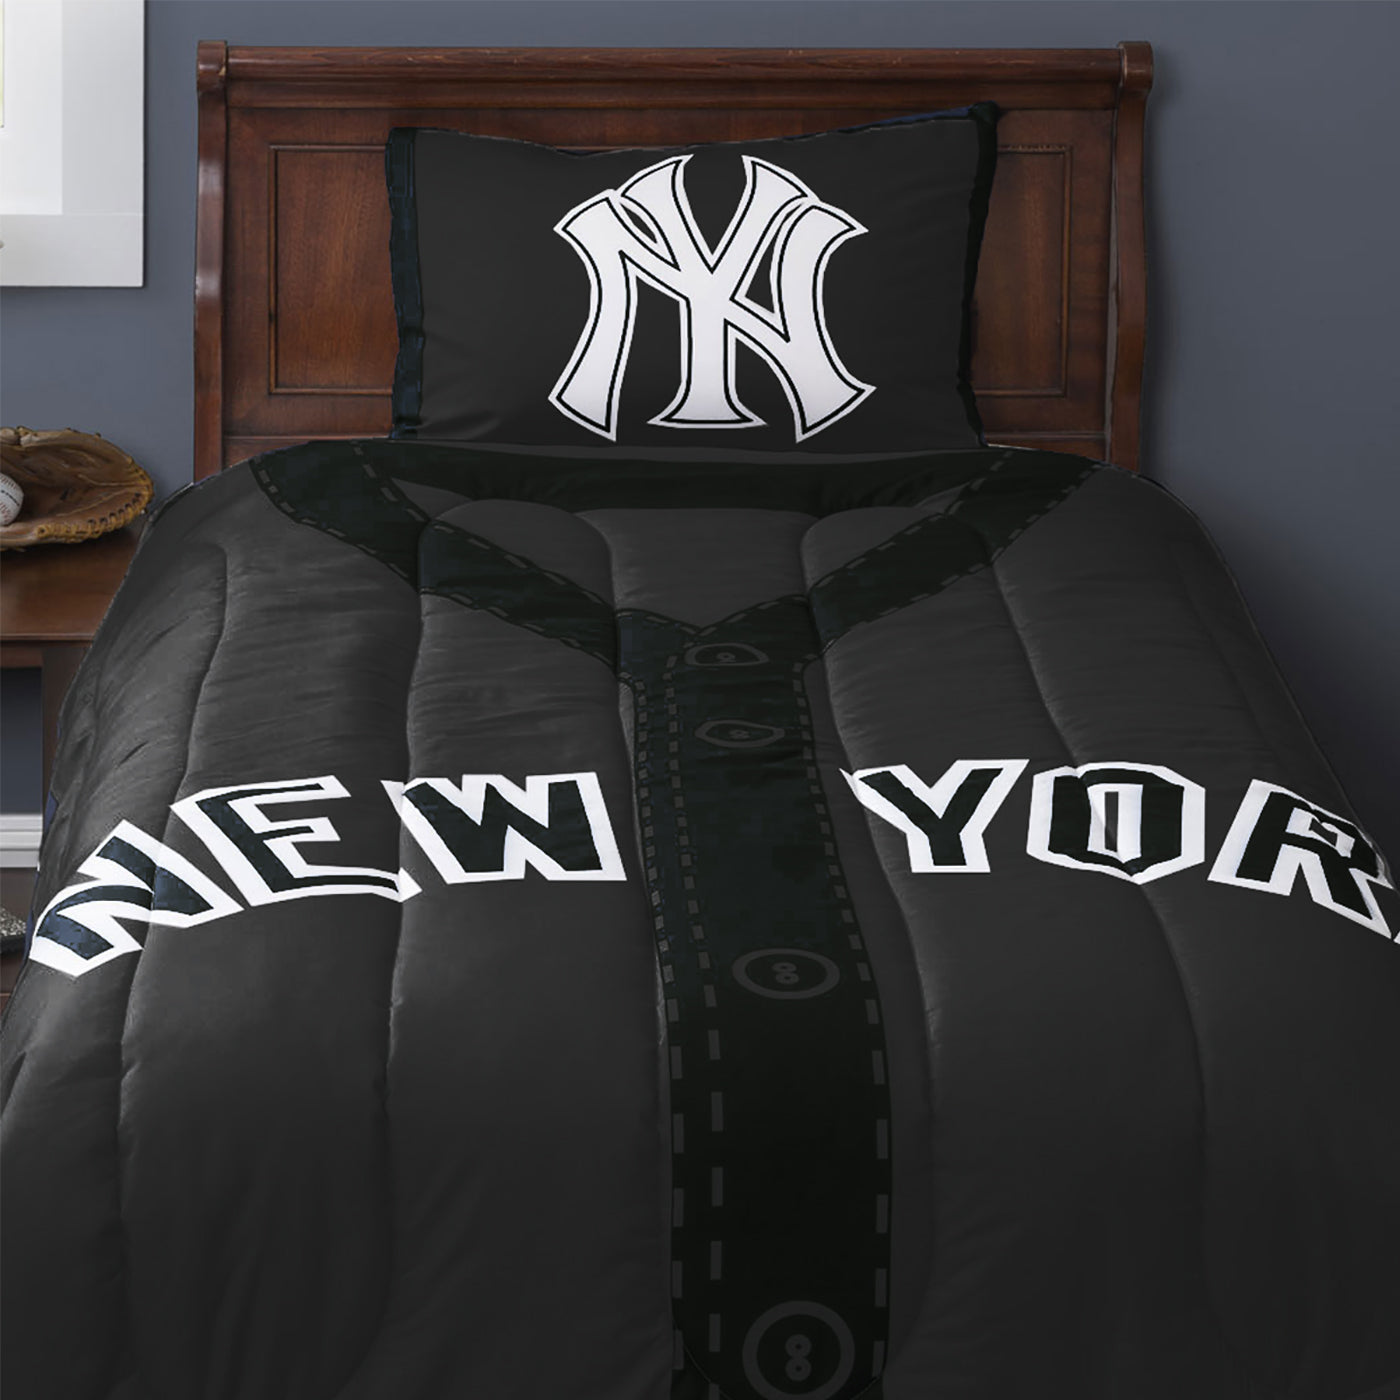 MLB New York Yankees Baseball Jersey Bed Comforter Set